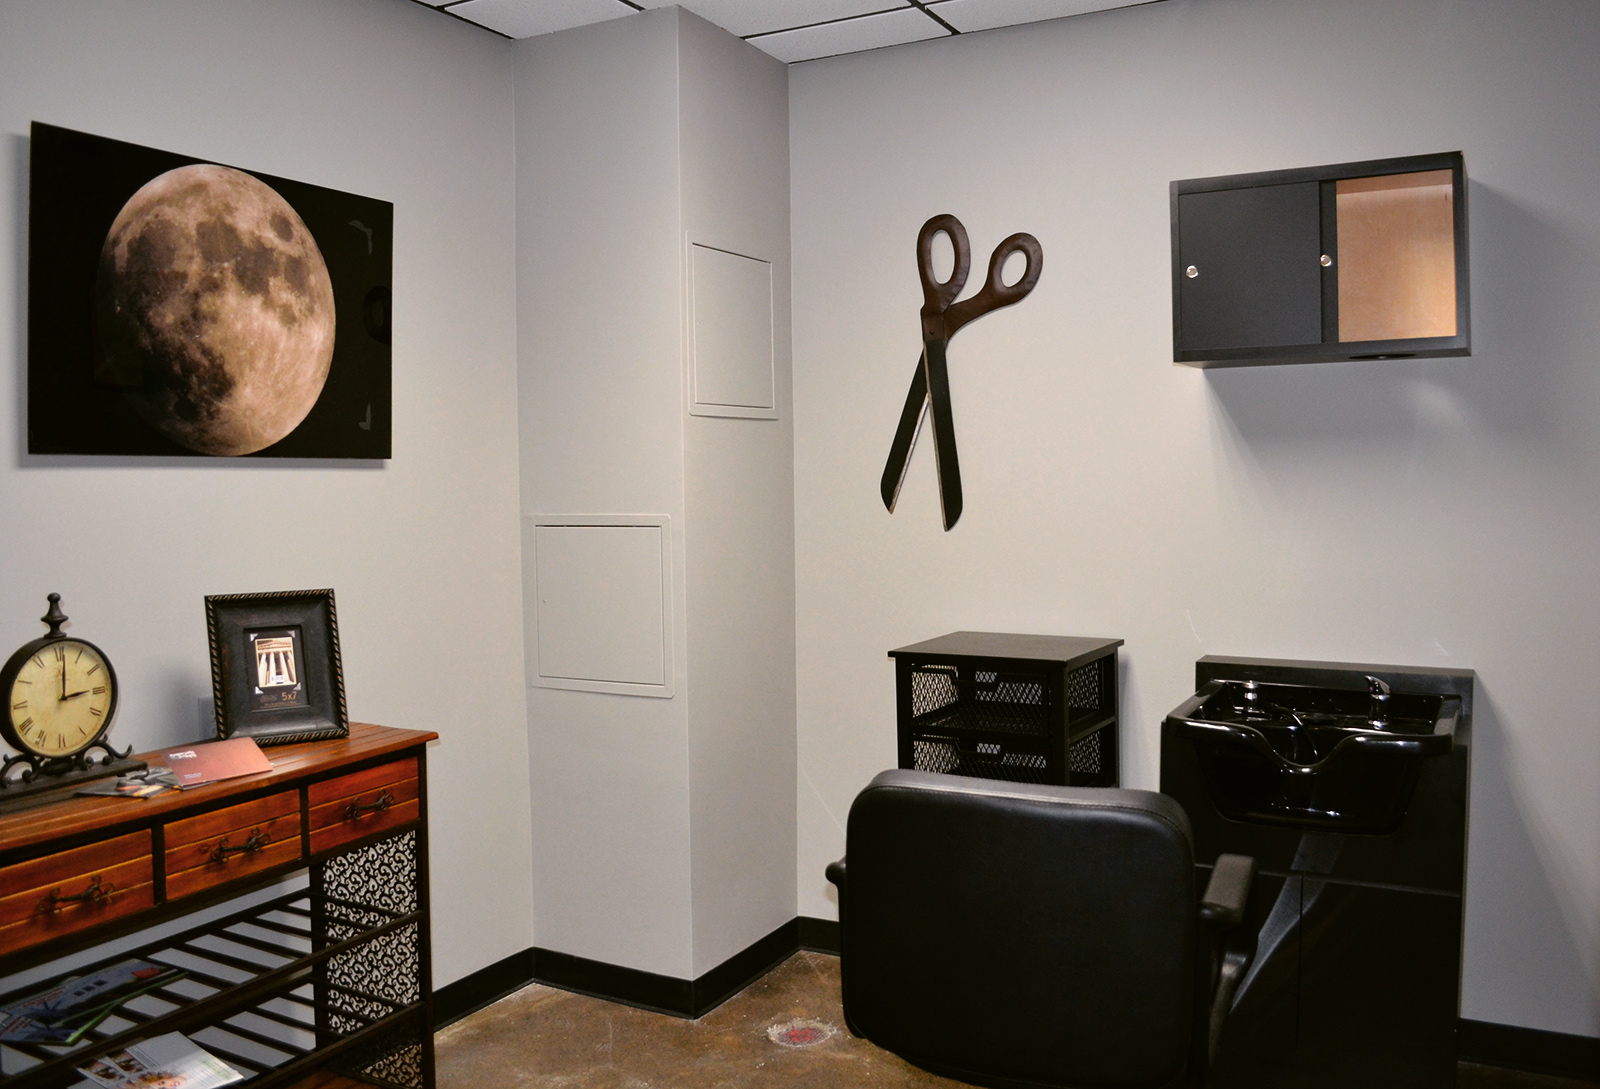 Salons in Mansfield TX are available at Salon & Spa Galleria